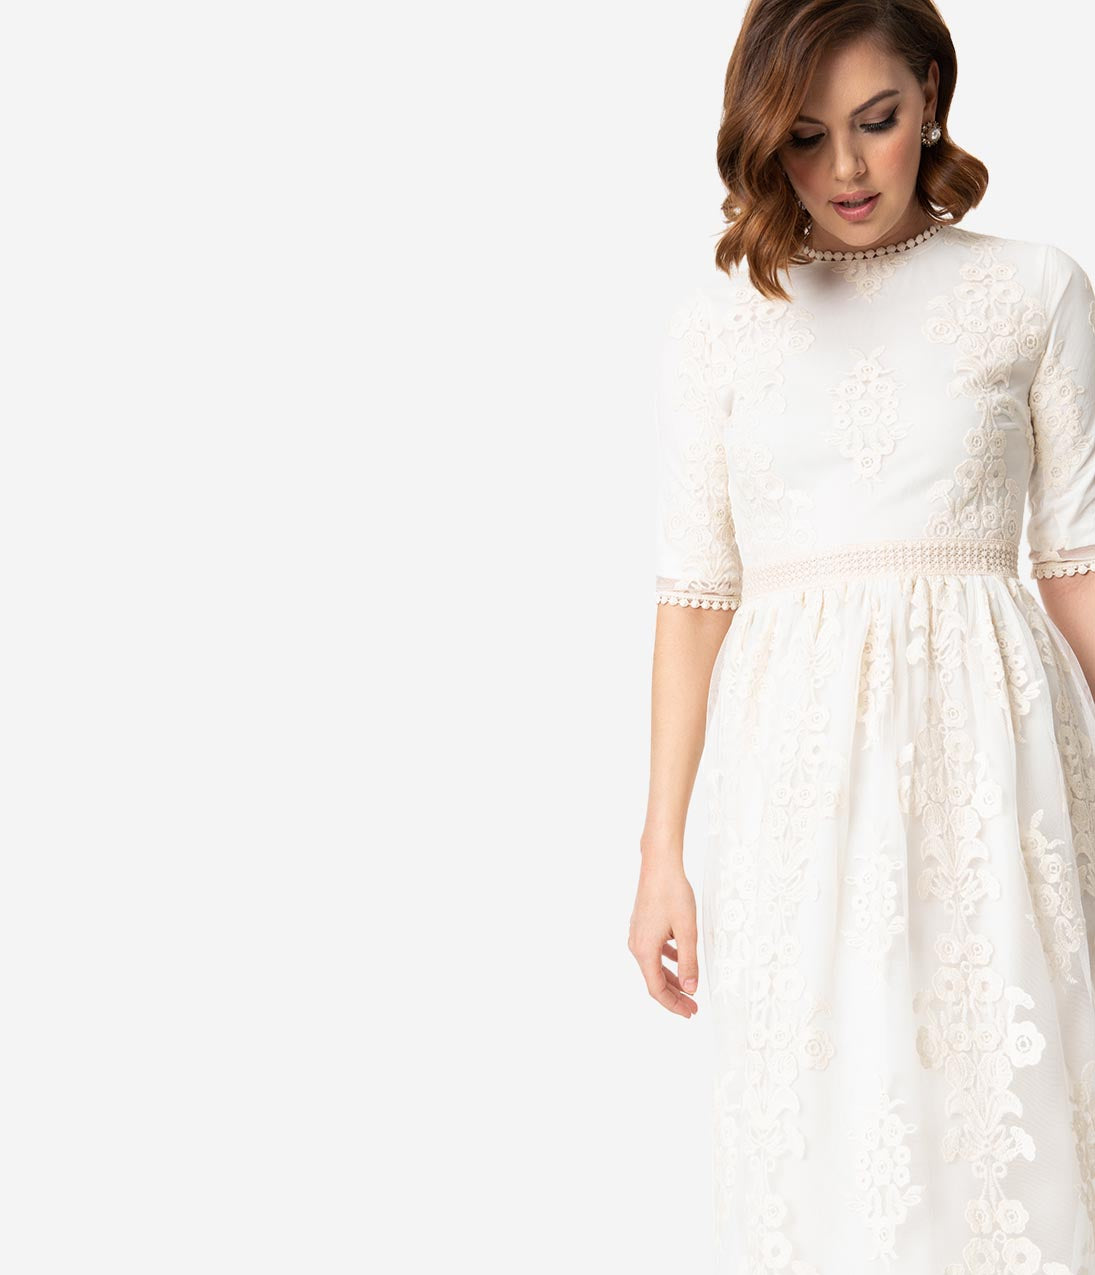 Authentic 1920s Makeup Tutorial Vintage Style Antique Ivory Embroidered Lace Modest Midi Dress $58.00 AT vintagedancer.com